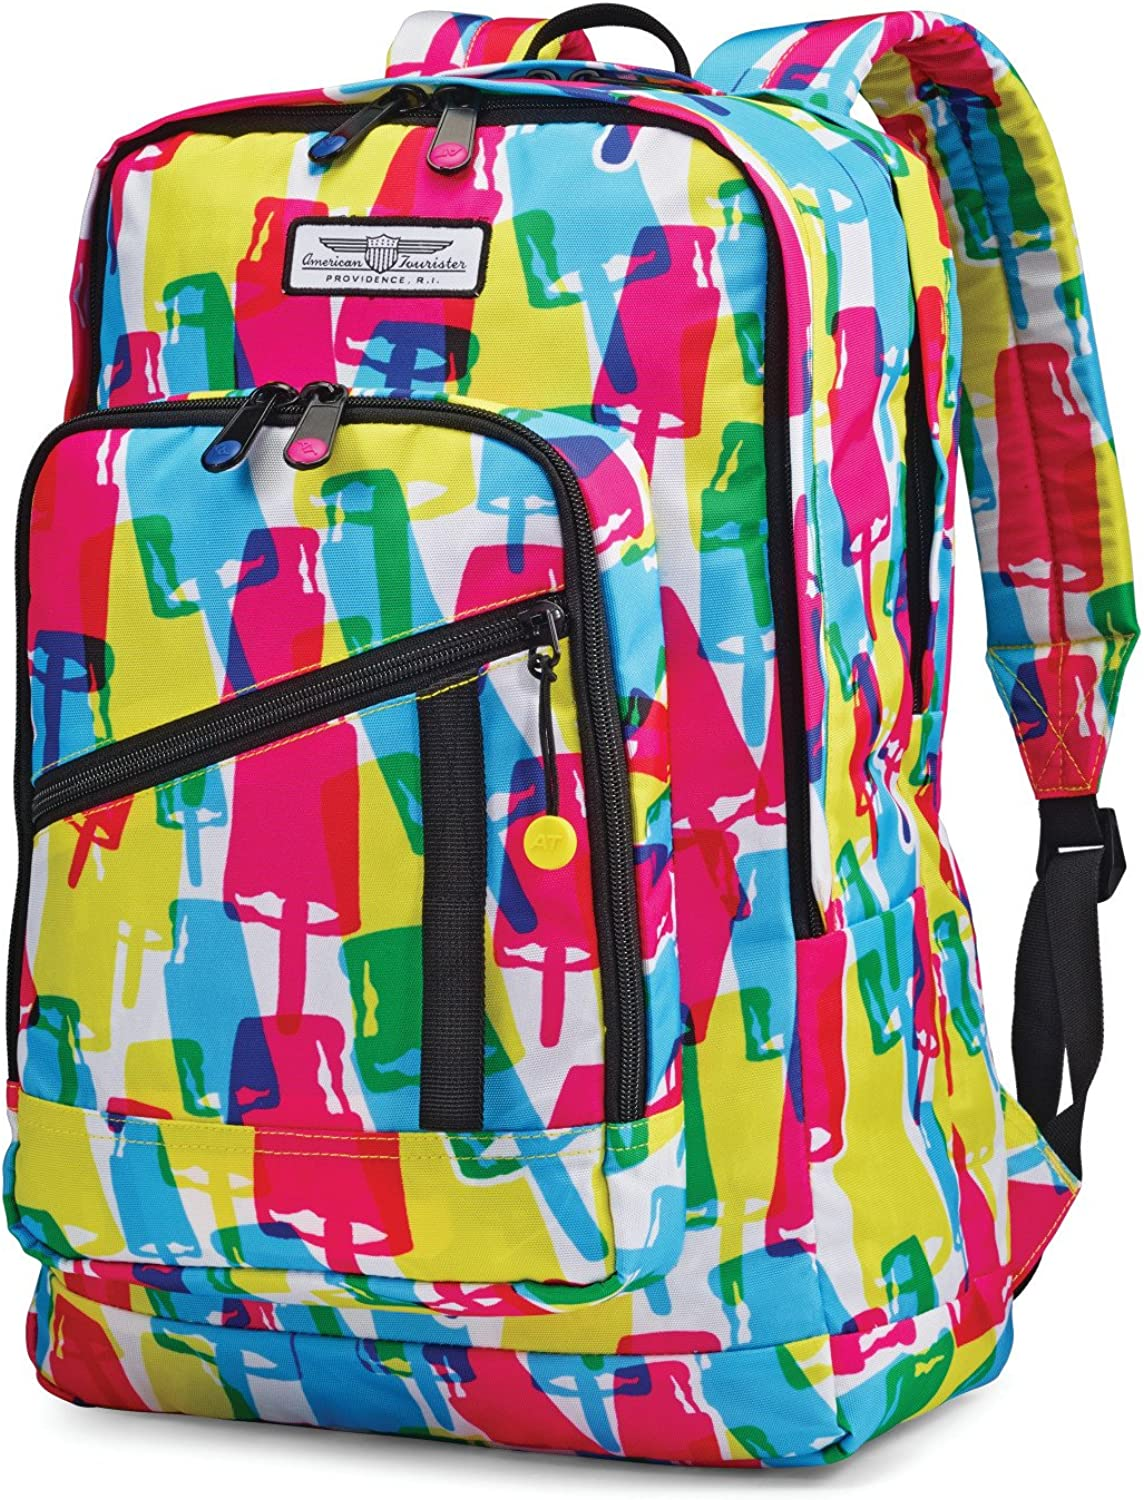 The Best Backpack For Laptop American Tourister